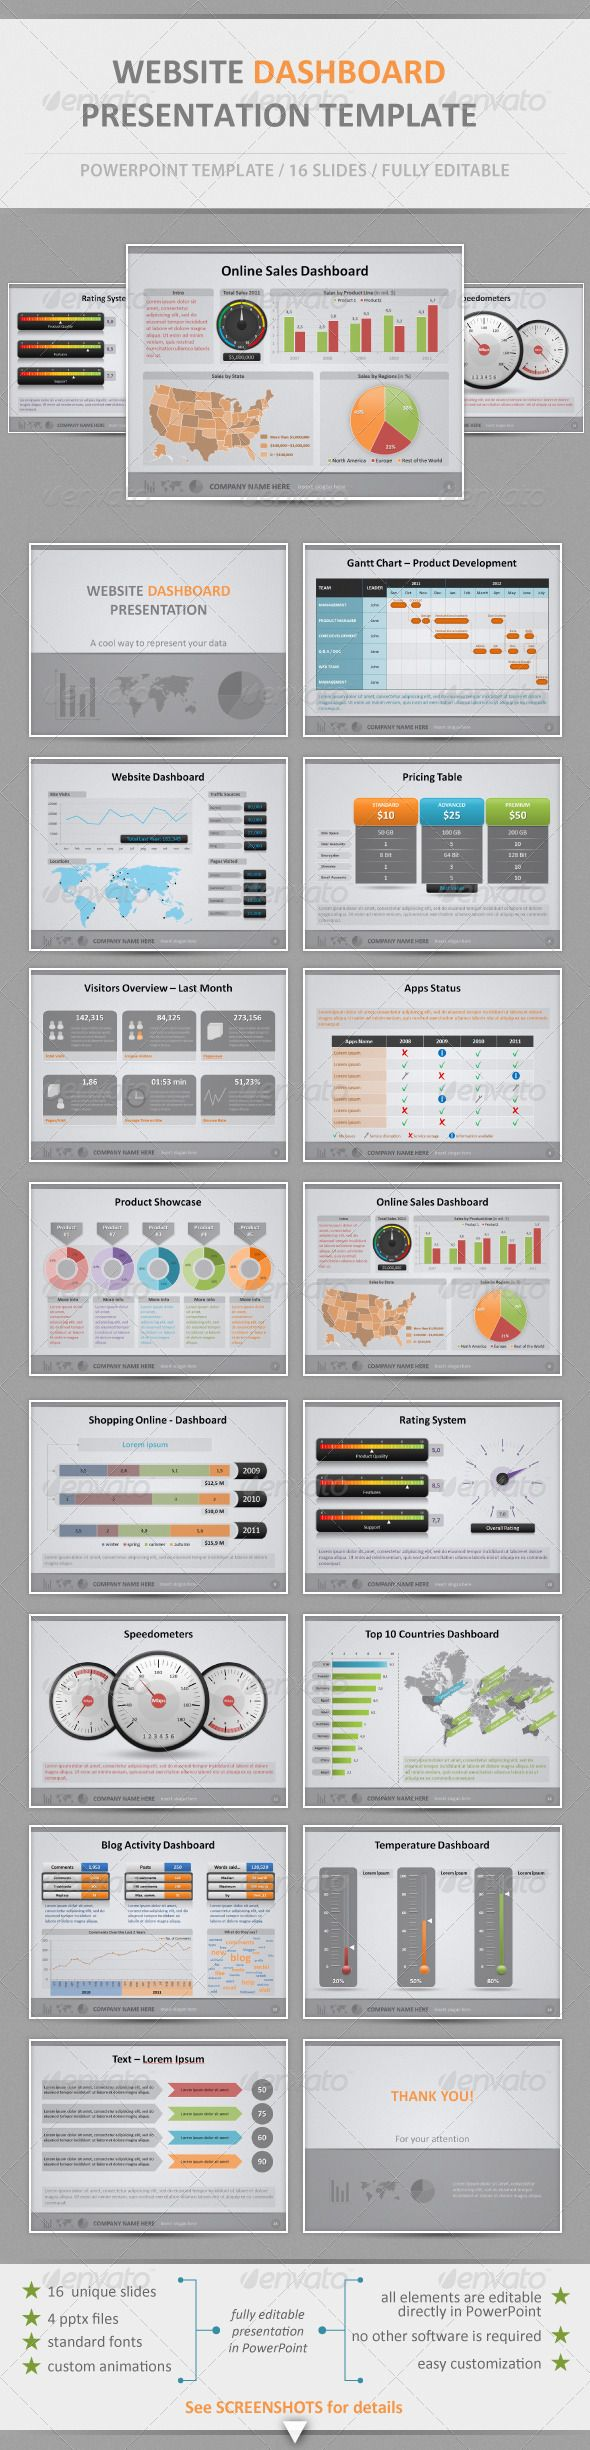 Best 25 presentation backgrounds ideas on pinterest brand website dashboard presentation template toneelgroepblik Choice Image